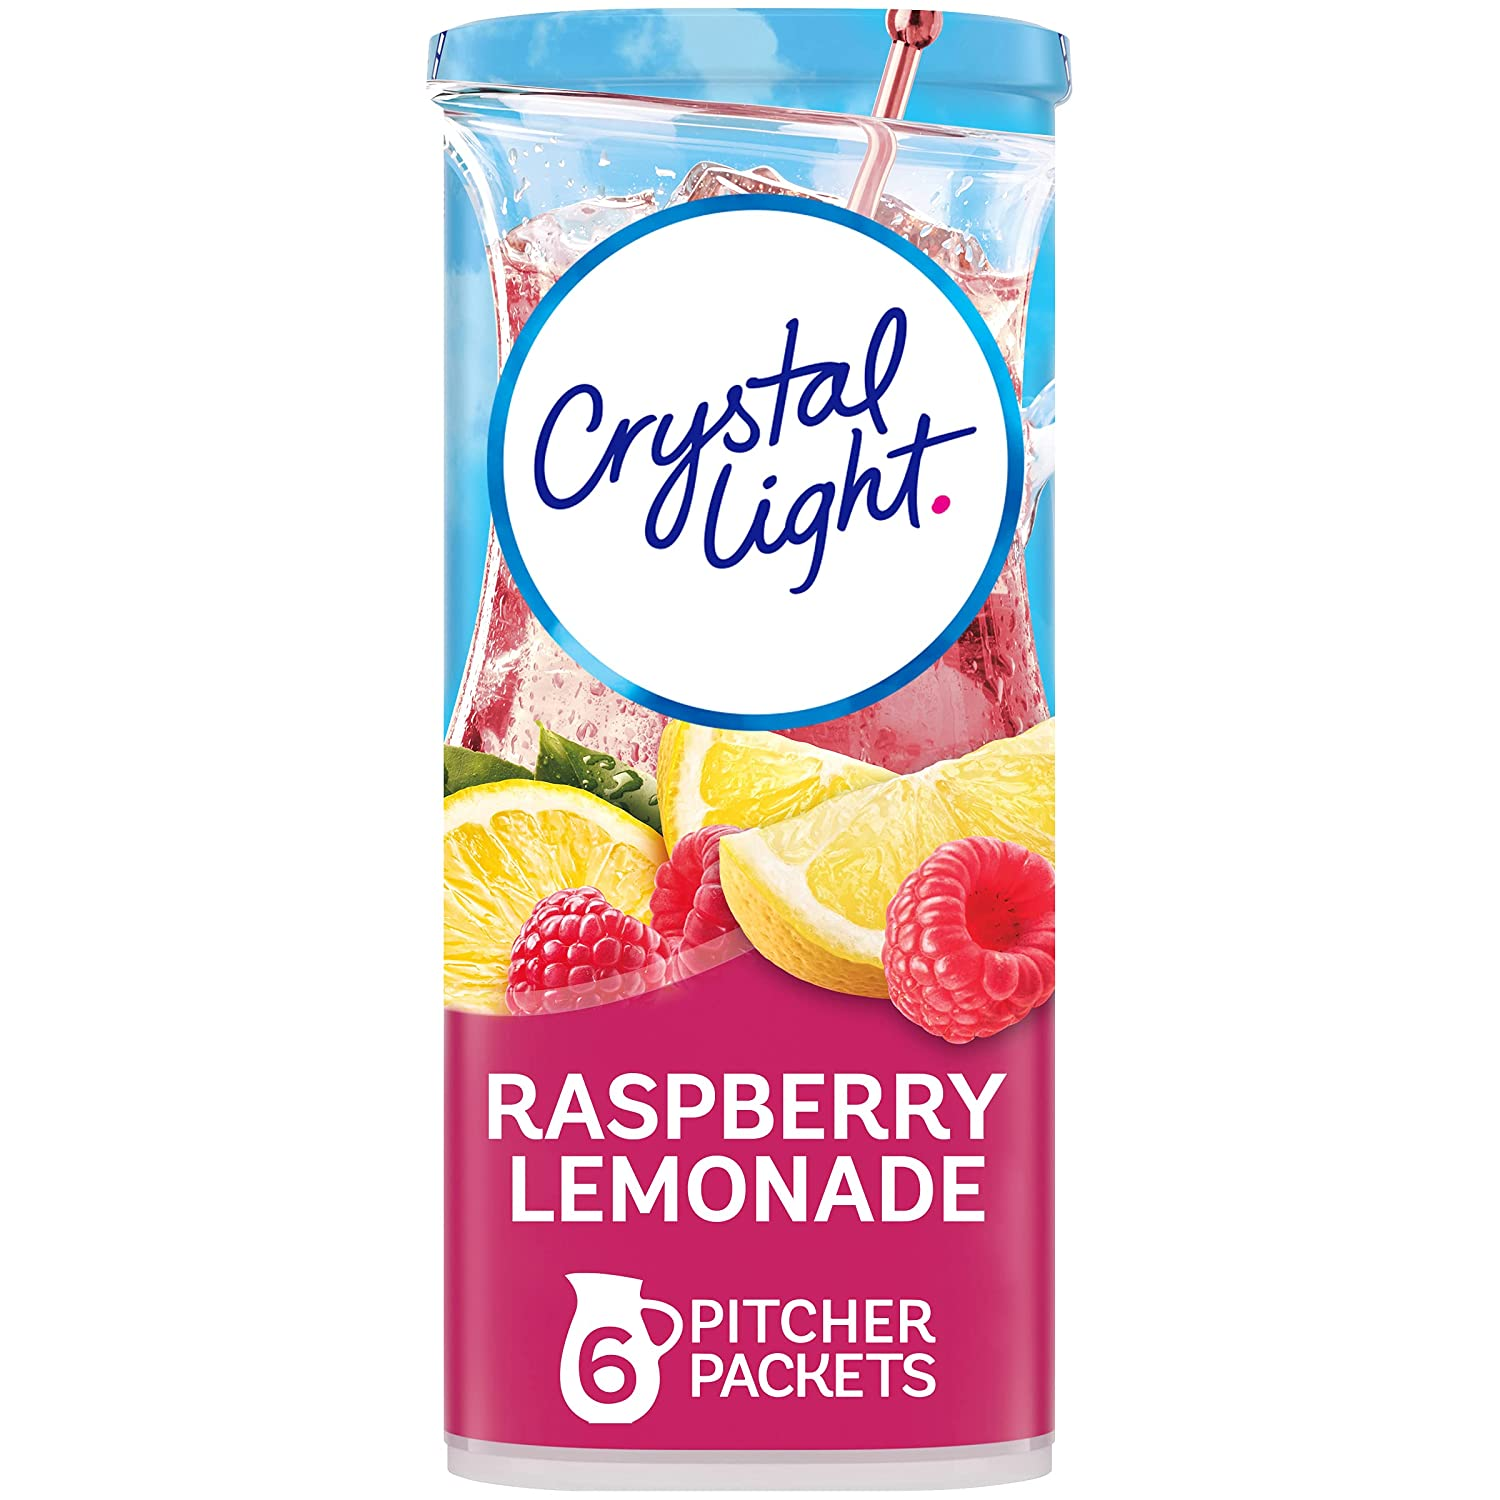 Crystal Light Raspberry Lemonade Drink Department store Packets Mix Pitcher Sale SALE% OFF 72